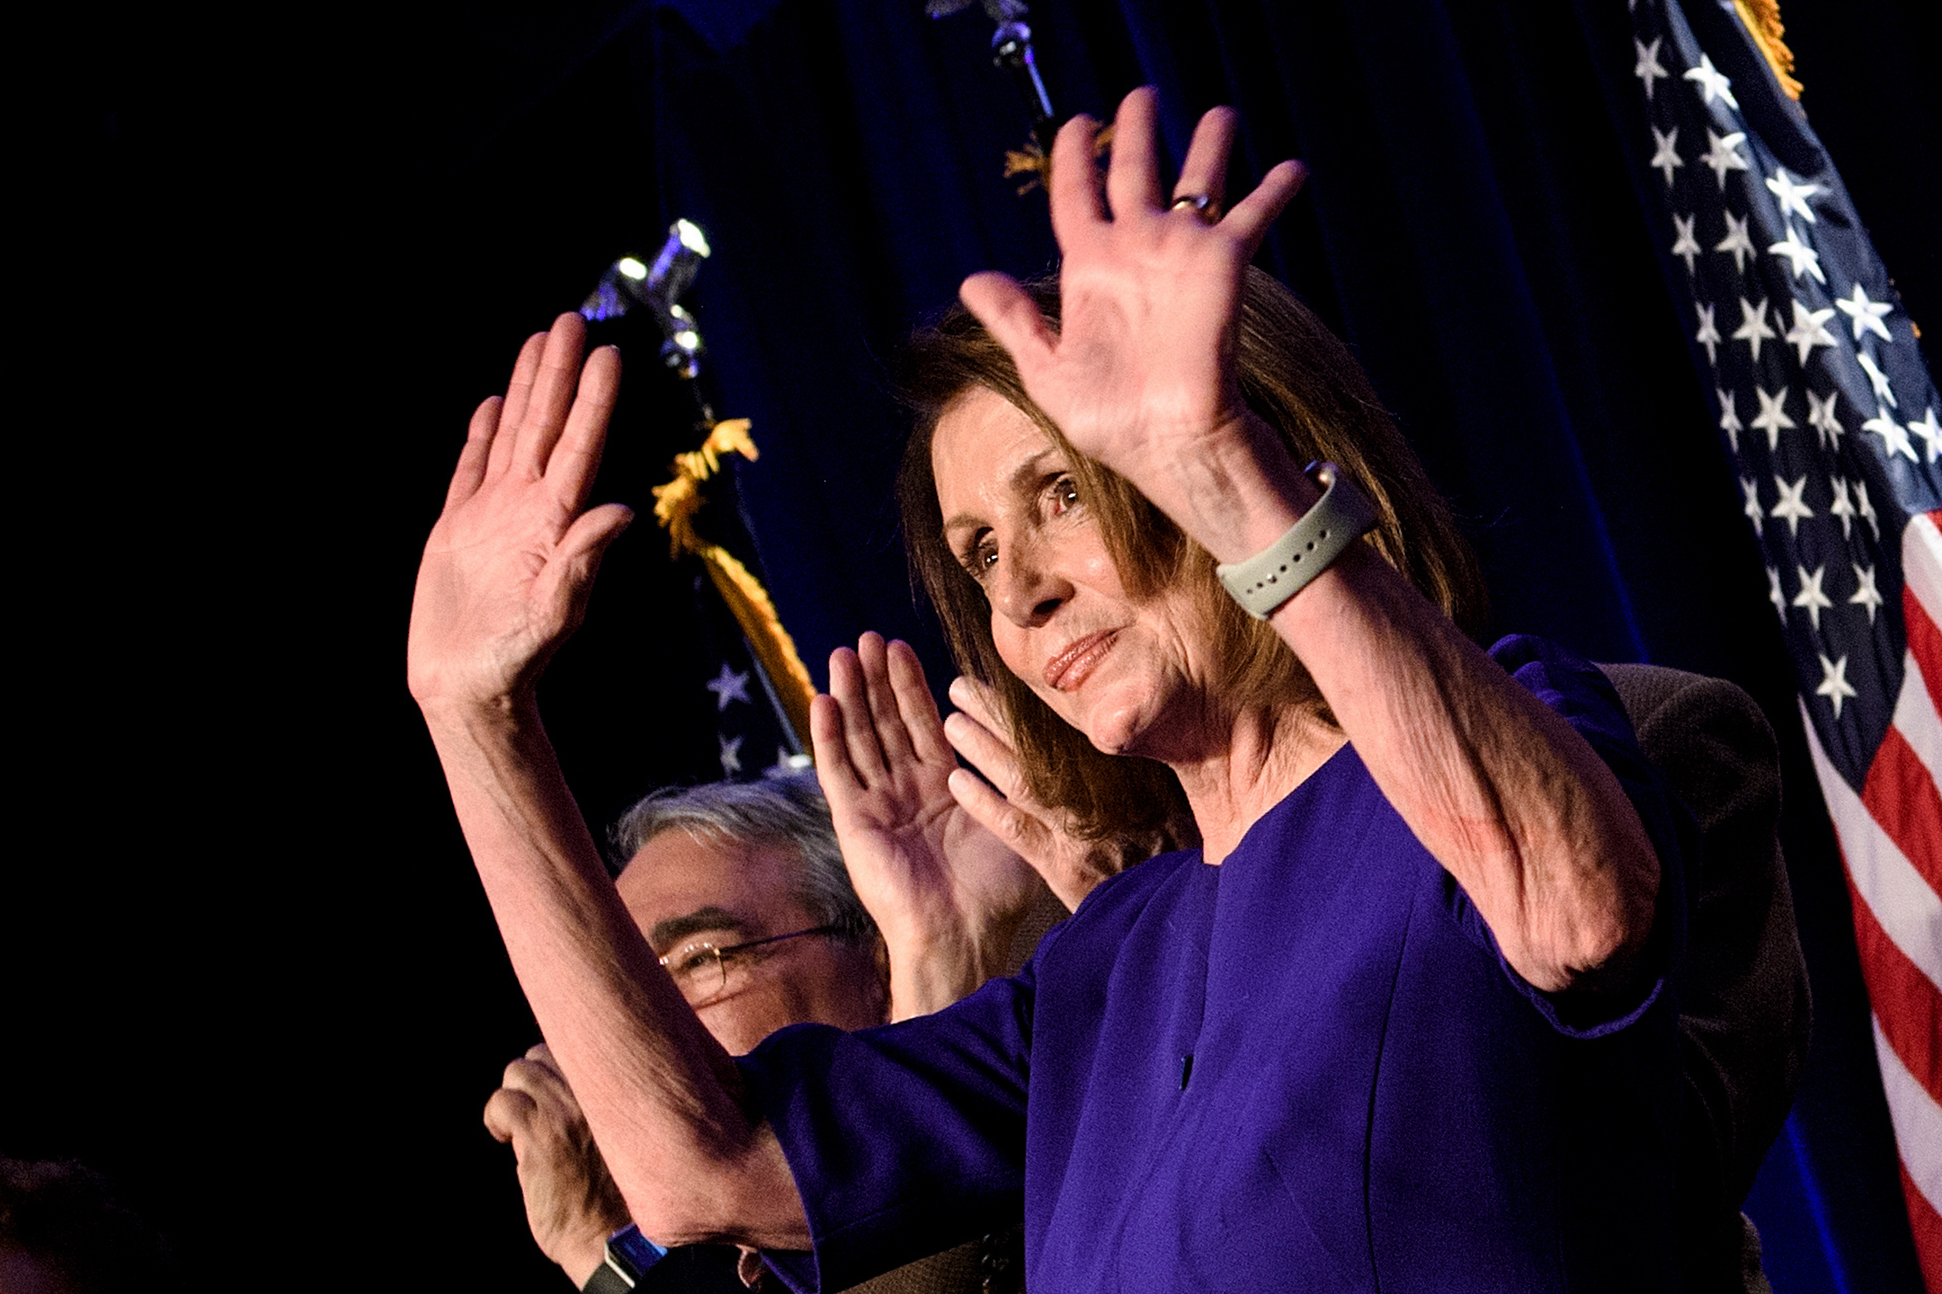 House Minority Leader Nancy Pelosi celebrates a Democratic Party takeover of the House of Representatives during a midterm election night party hosted by the DCCC on November 6, 2018 (Brendan Smialowski/AFP/Getty Images)